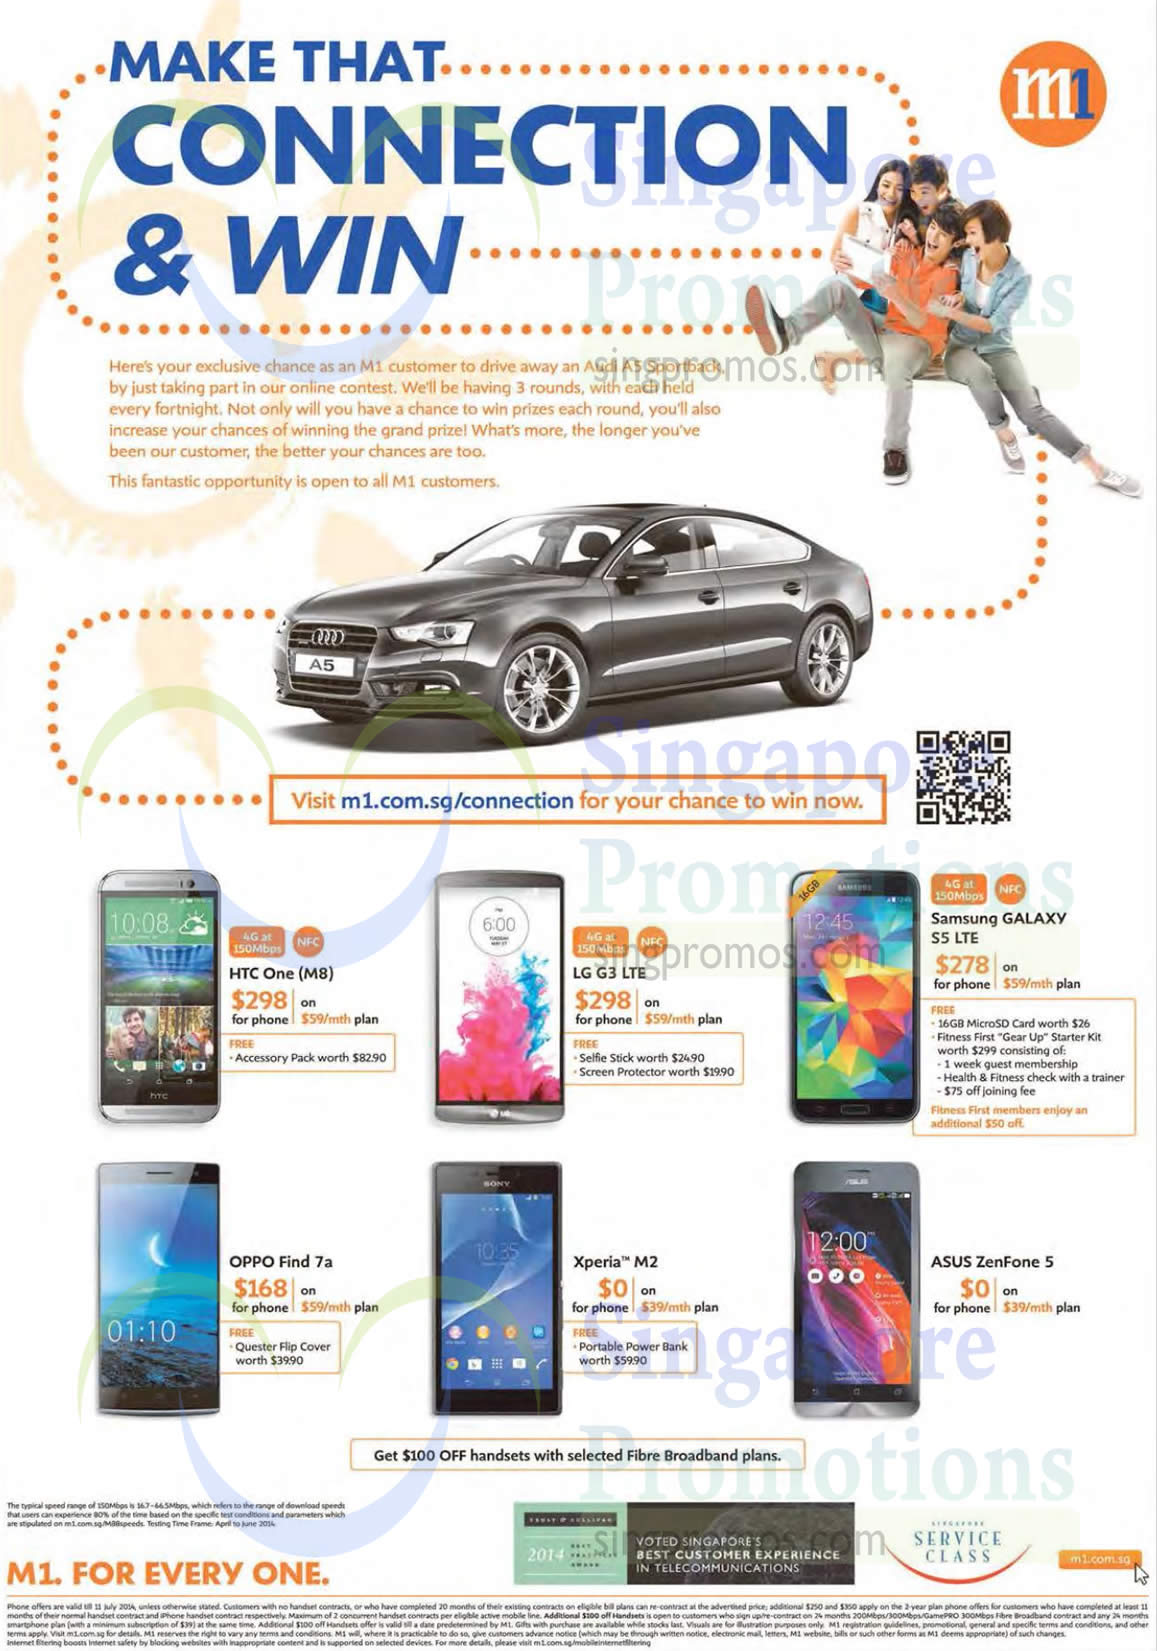 HTC One, LG G3, Samsung Galaxy S5, Oppo Find 7a, Sony Xperia M2, ASUS ZenFone 5